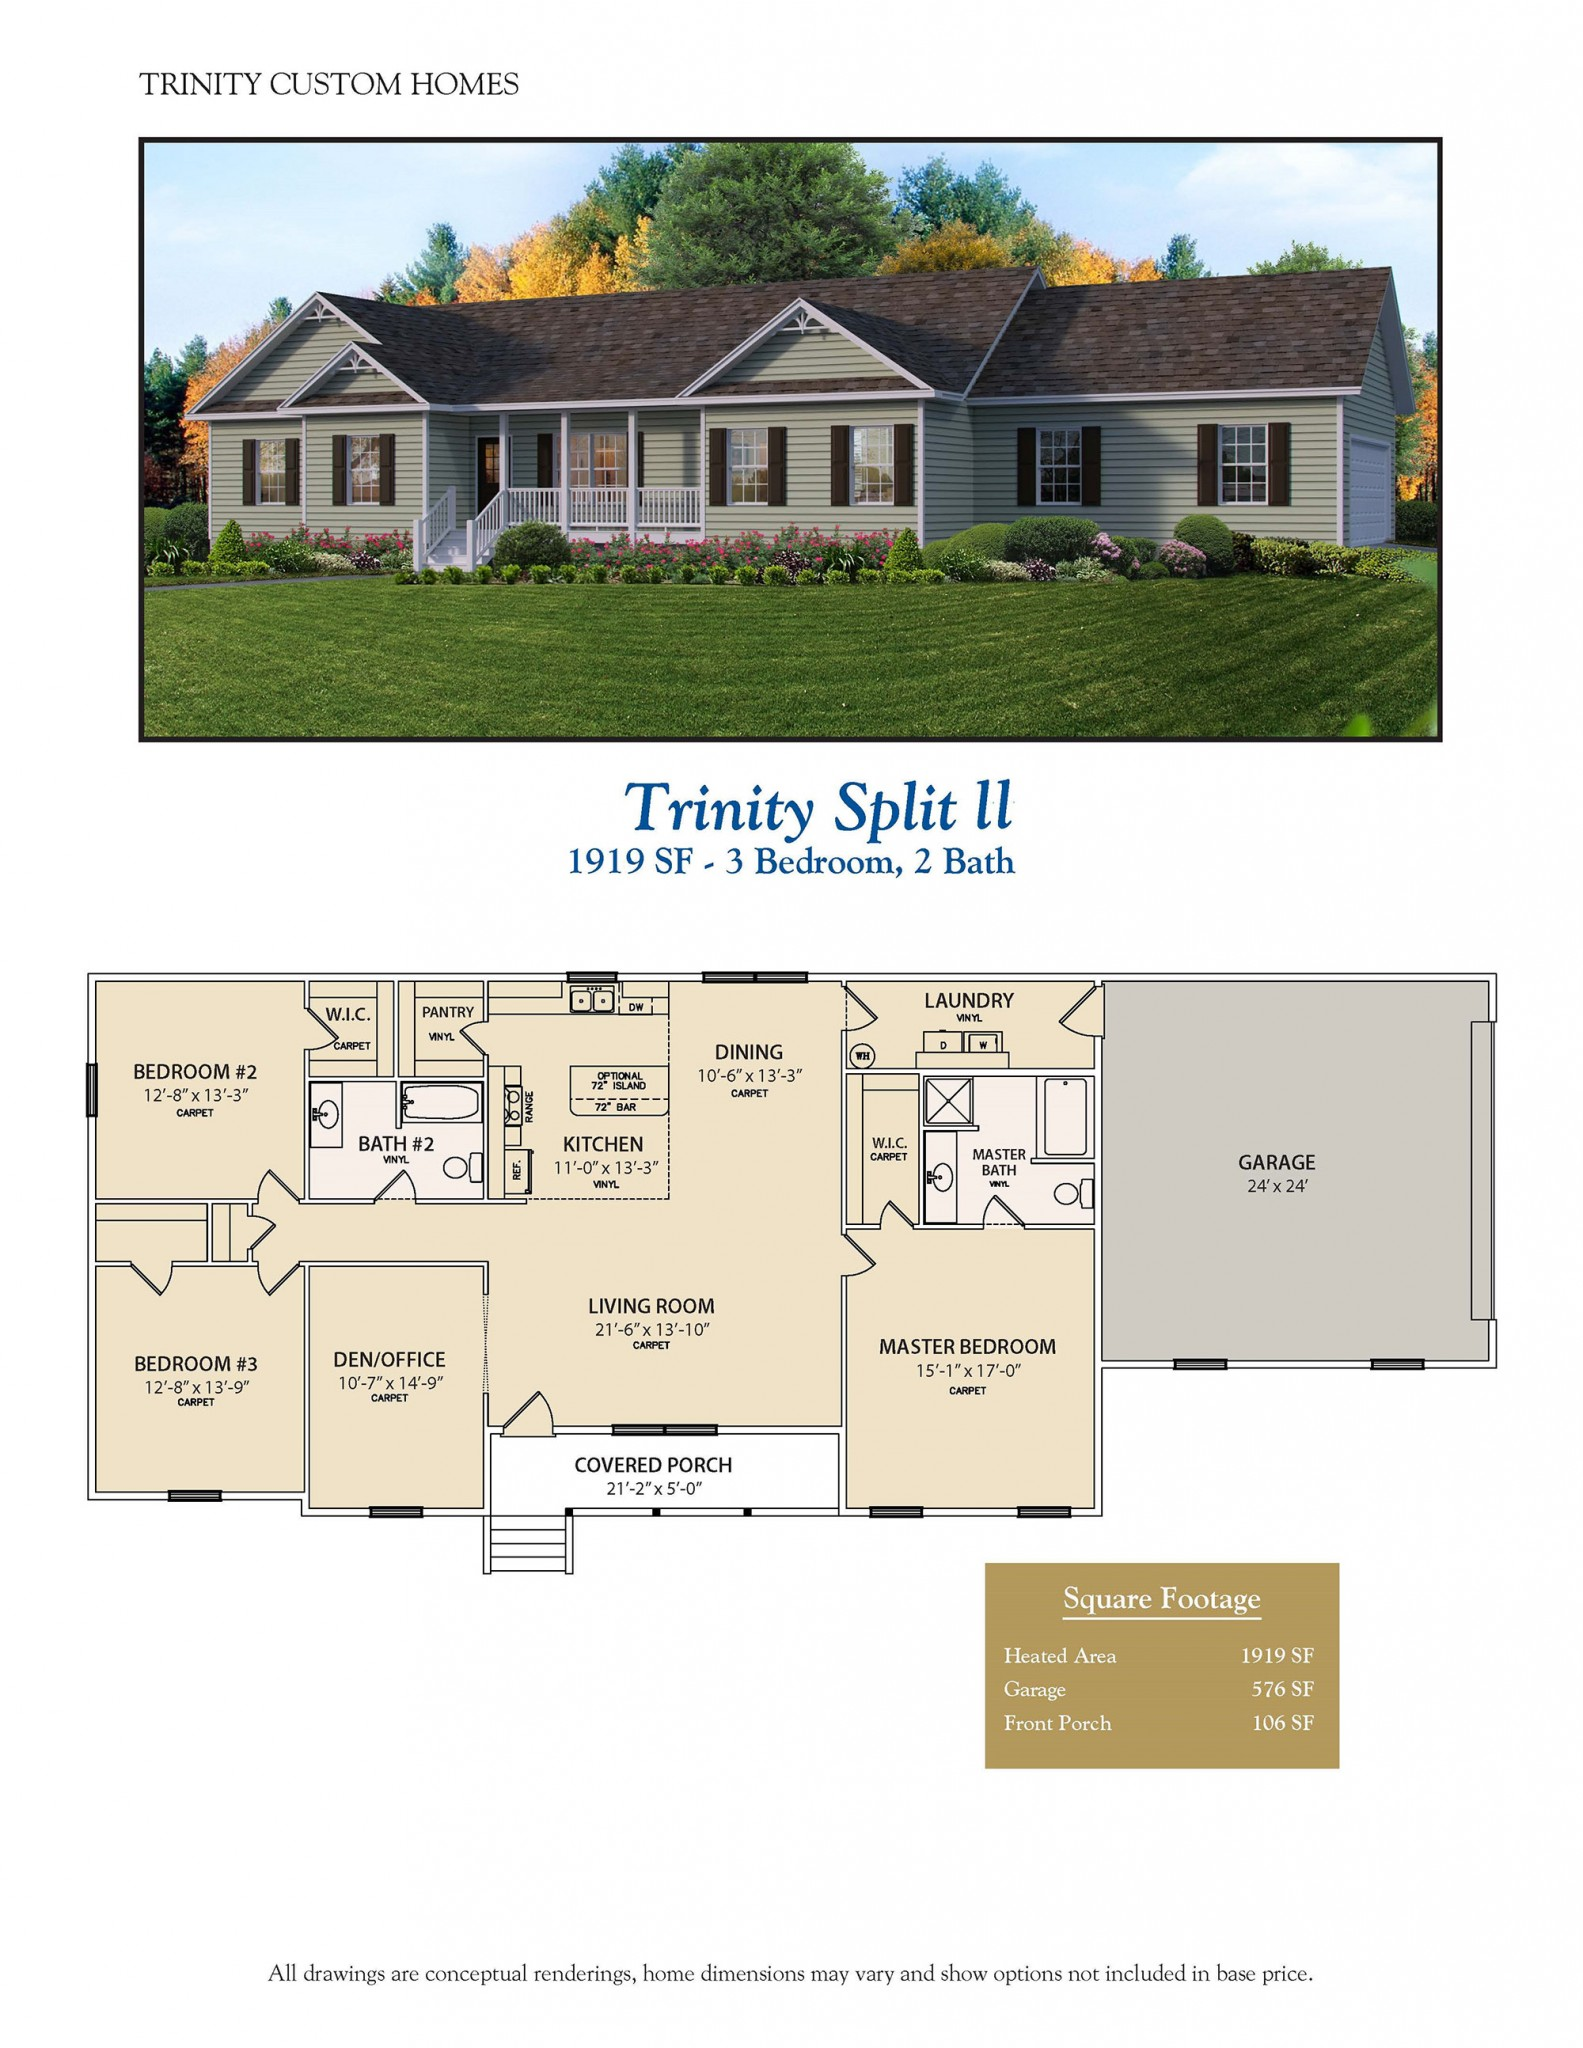 Trinity split ii welcome to trinity custom homes for Trinity house plans